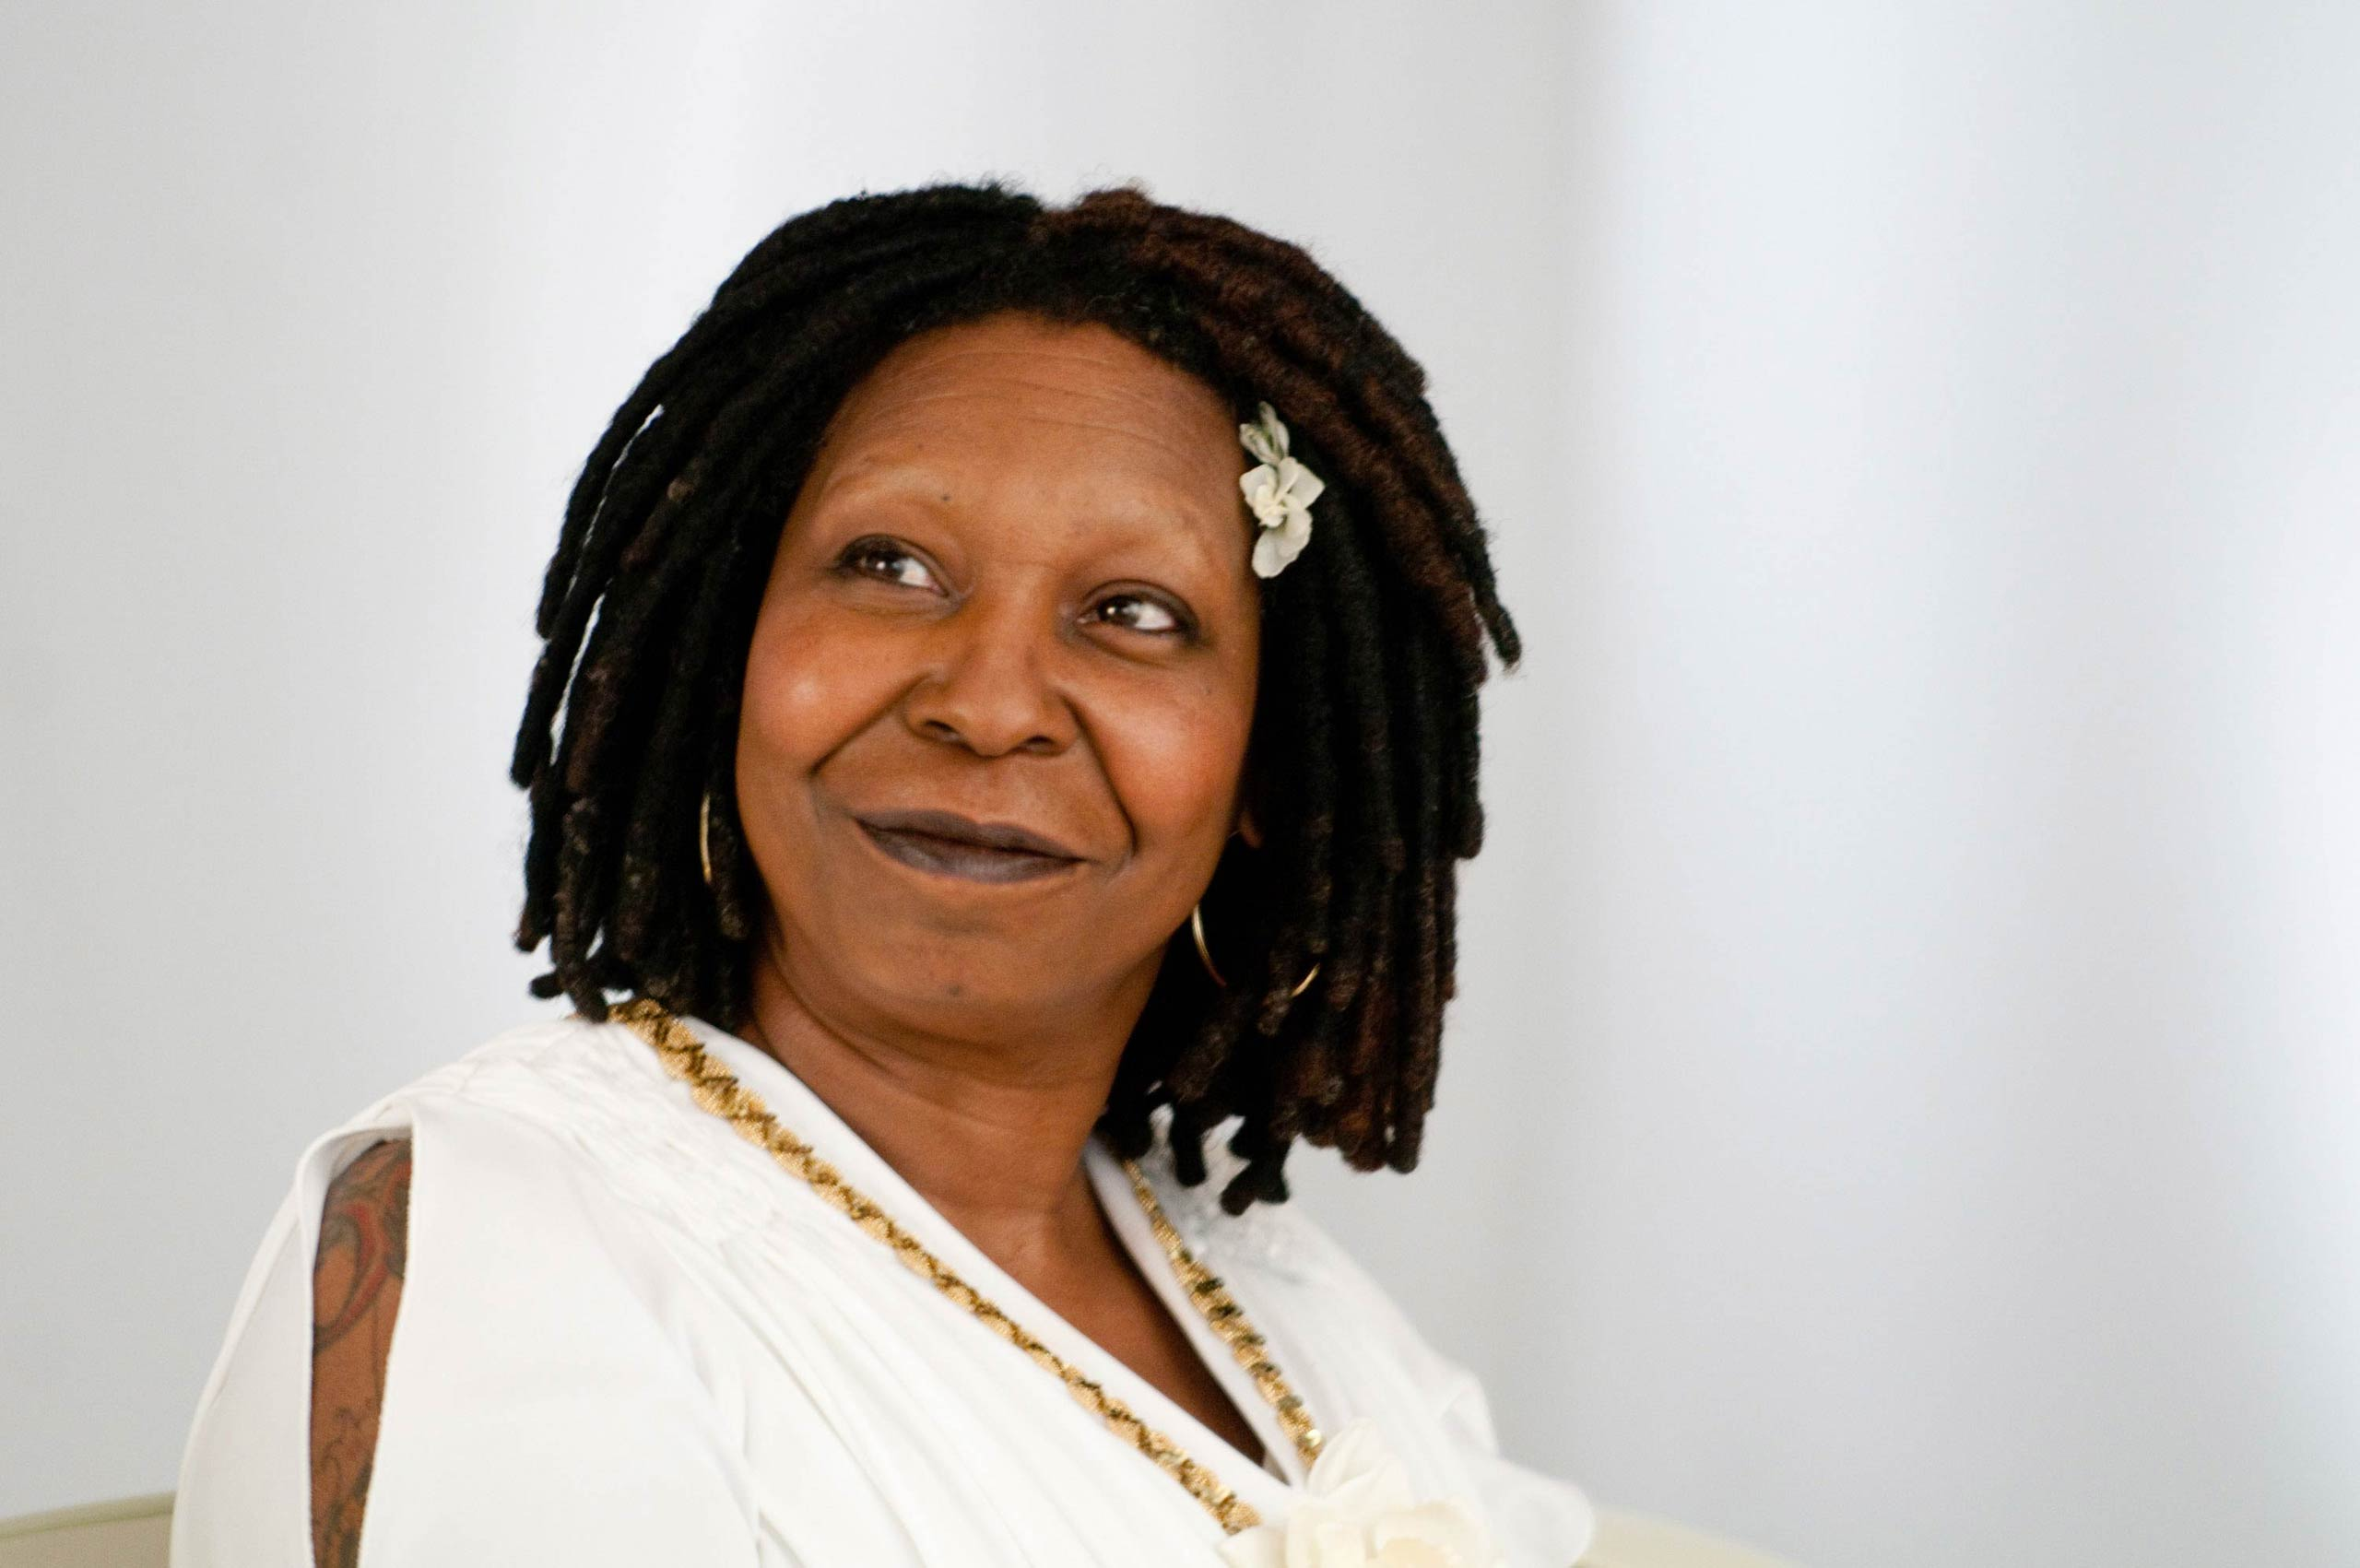 <strong>Whoopi Goldberg, <i>A little Bit of Heaven</i></strong>                                   The Oscar winner was part of the deeply strange Kate Hudson rom-com, in which she appears as God before a terminally-ill Hudson and grants her three wishes. This wasn't new for Goldberg, though: she'd previously played a spin on God in 2002's <i>A Very Merry Muppet Christmas Movie</i>.